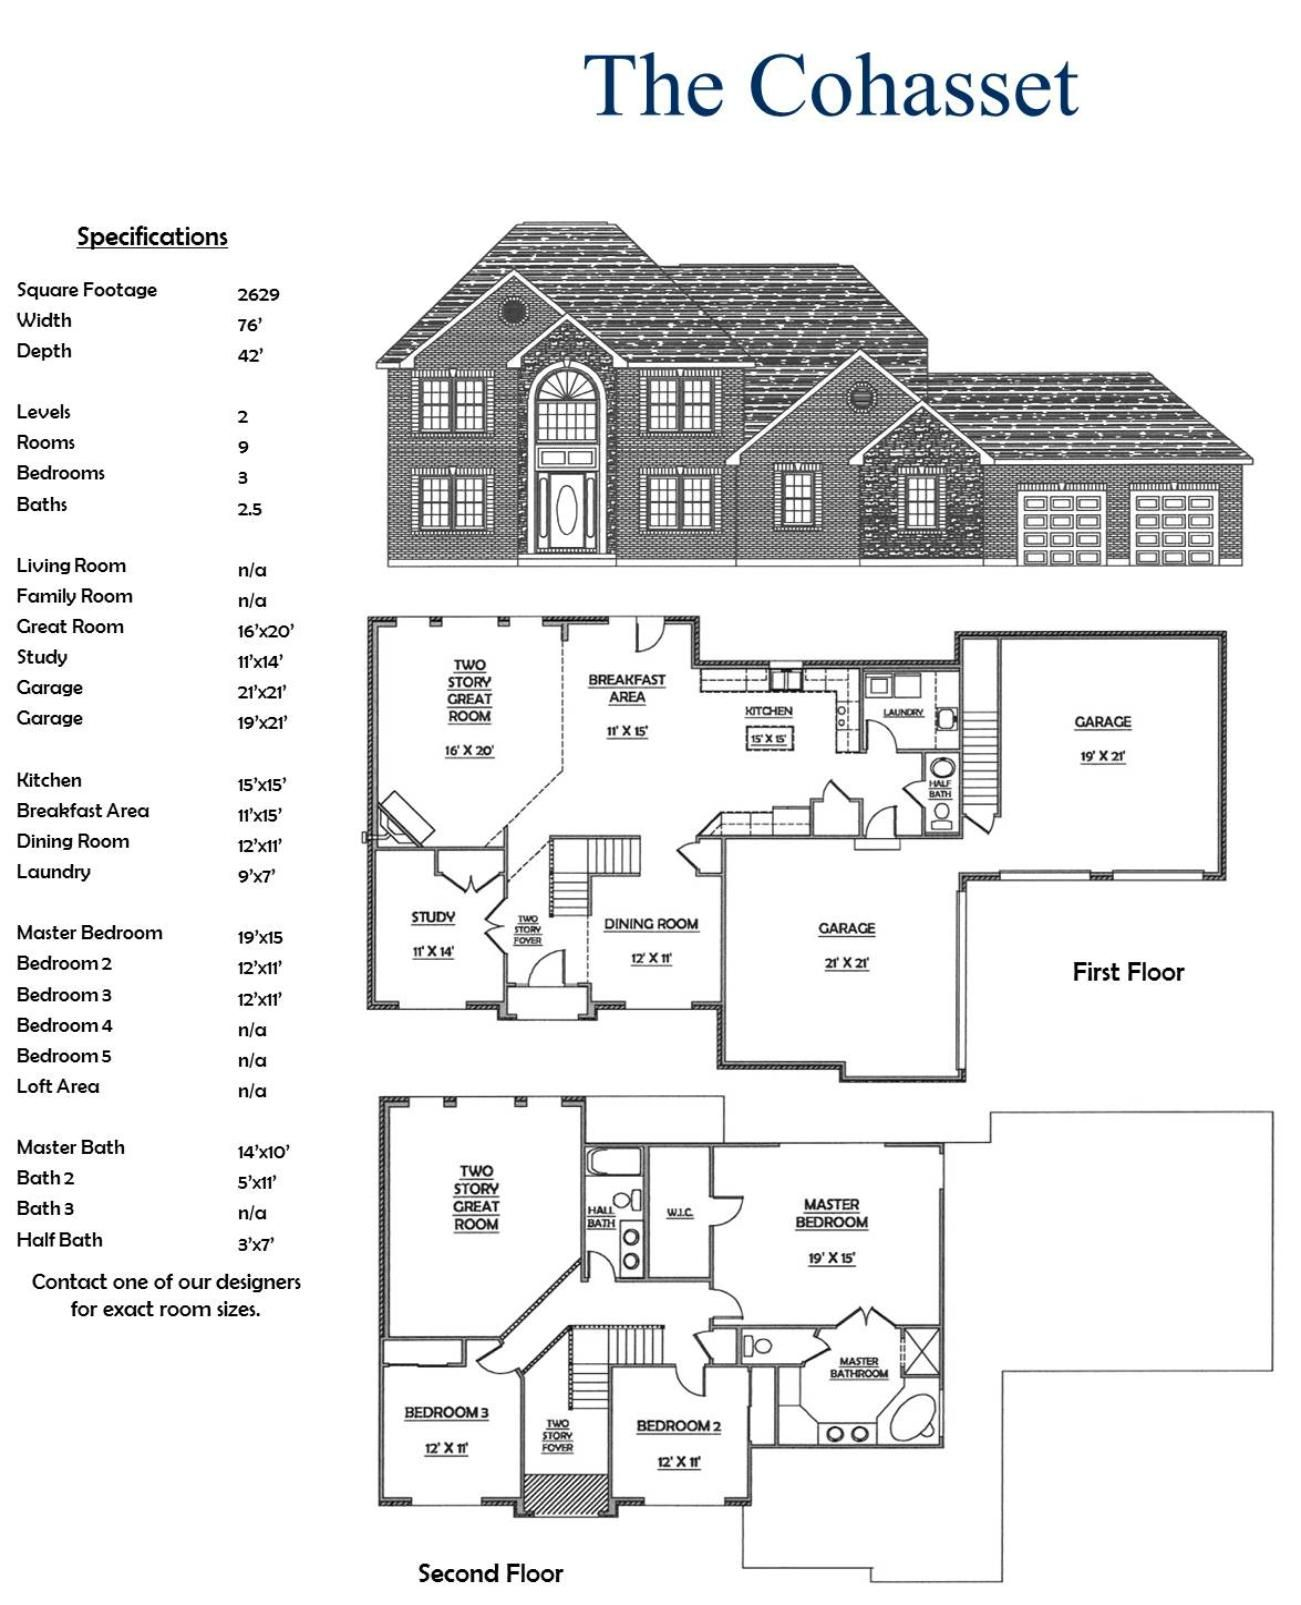 The Cohasset | House floor plans, Cohasset, Great rooms